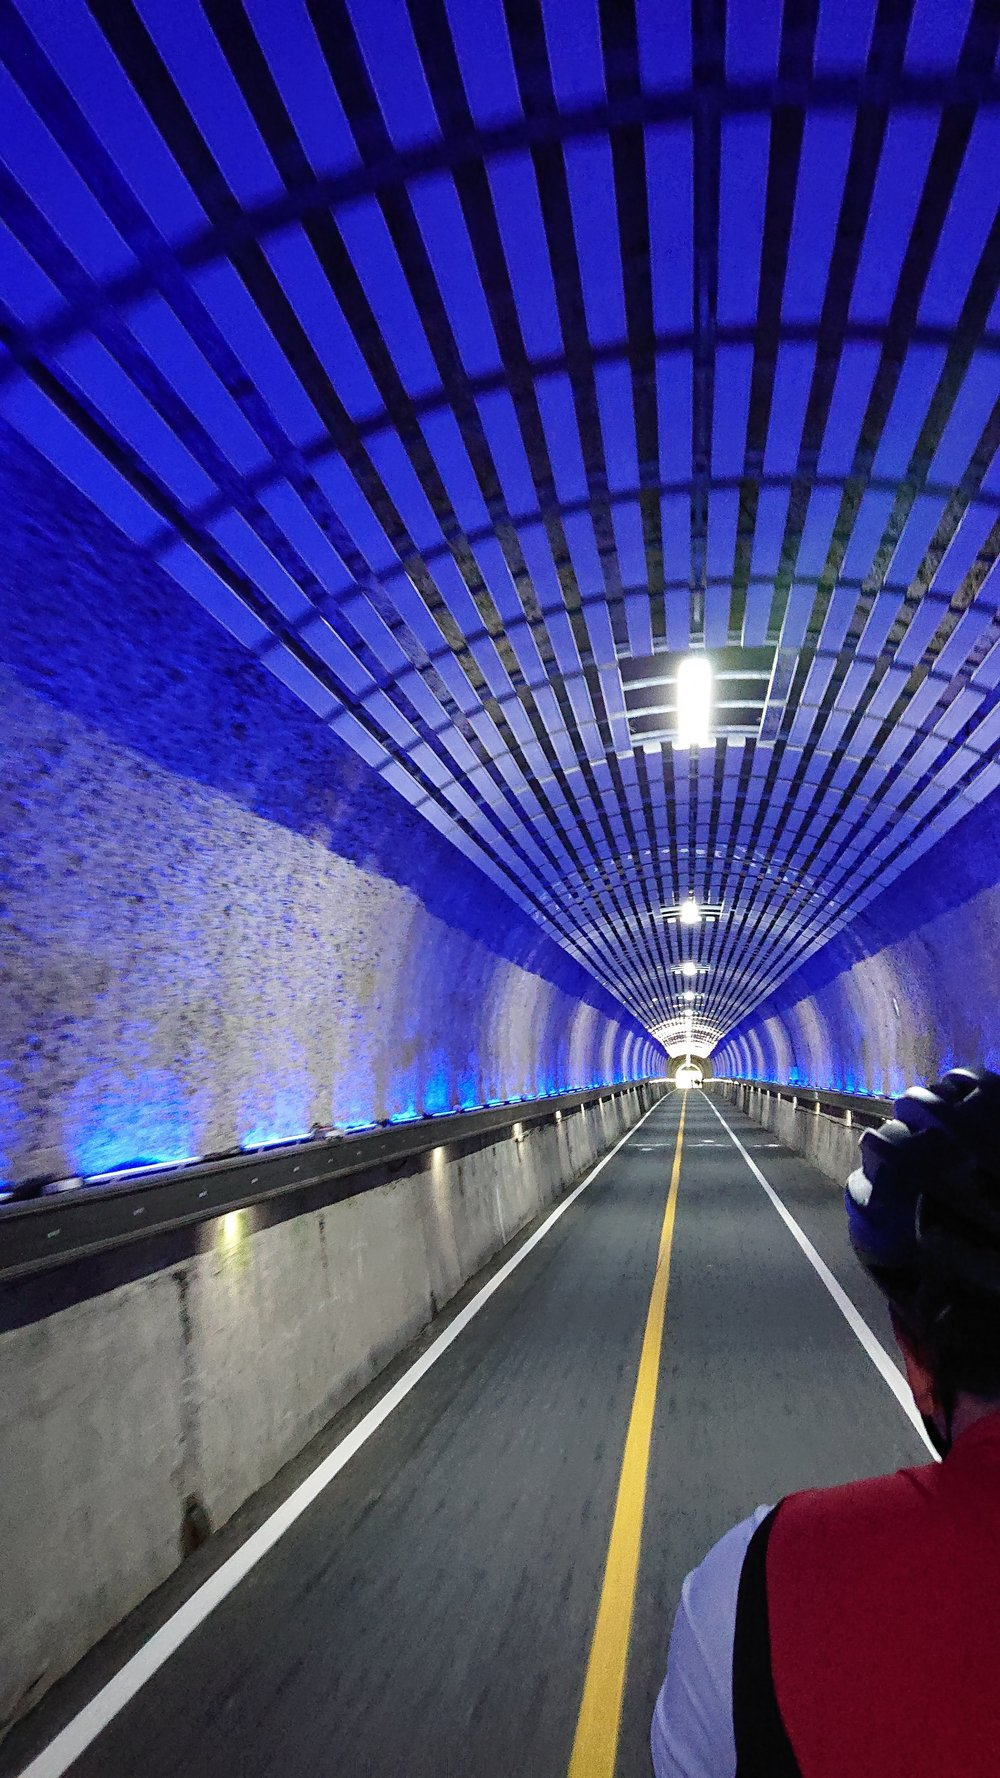 Another tunnel, this time featuring a light installation whose colours changed constantly as we rode through.